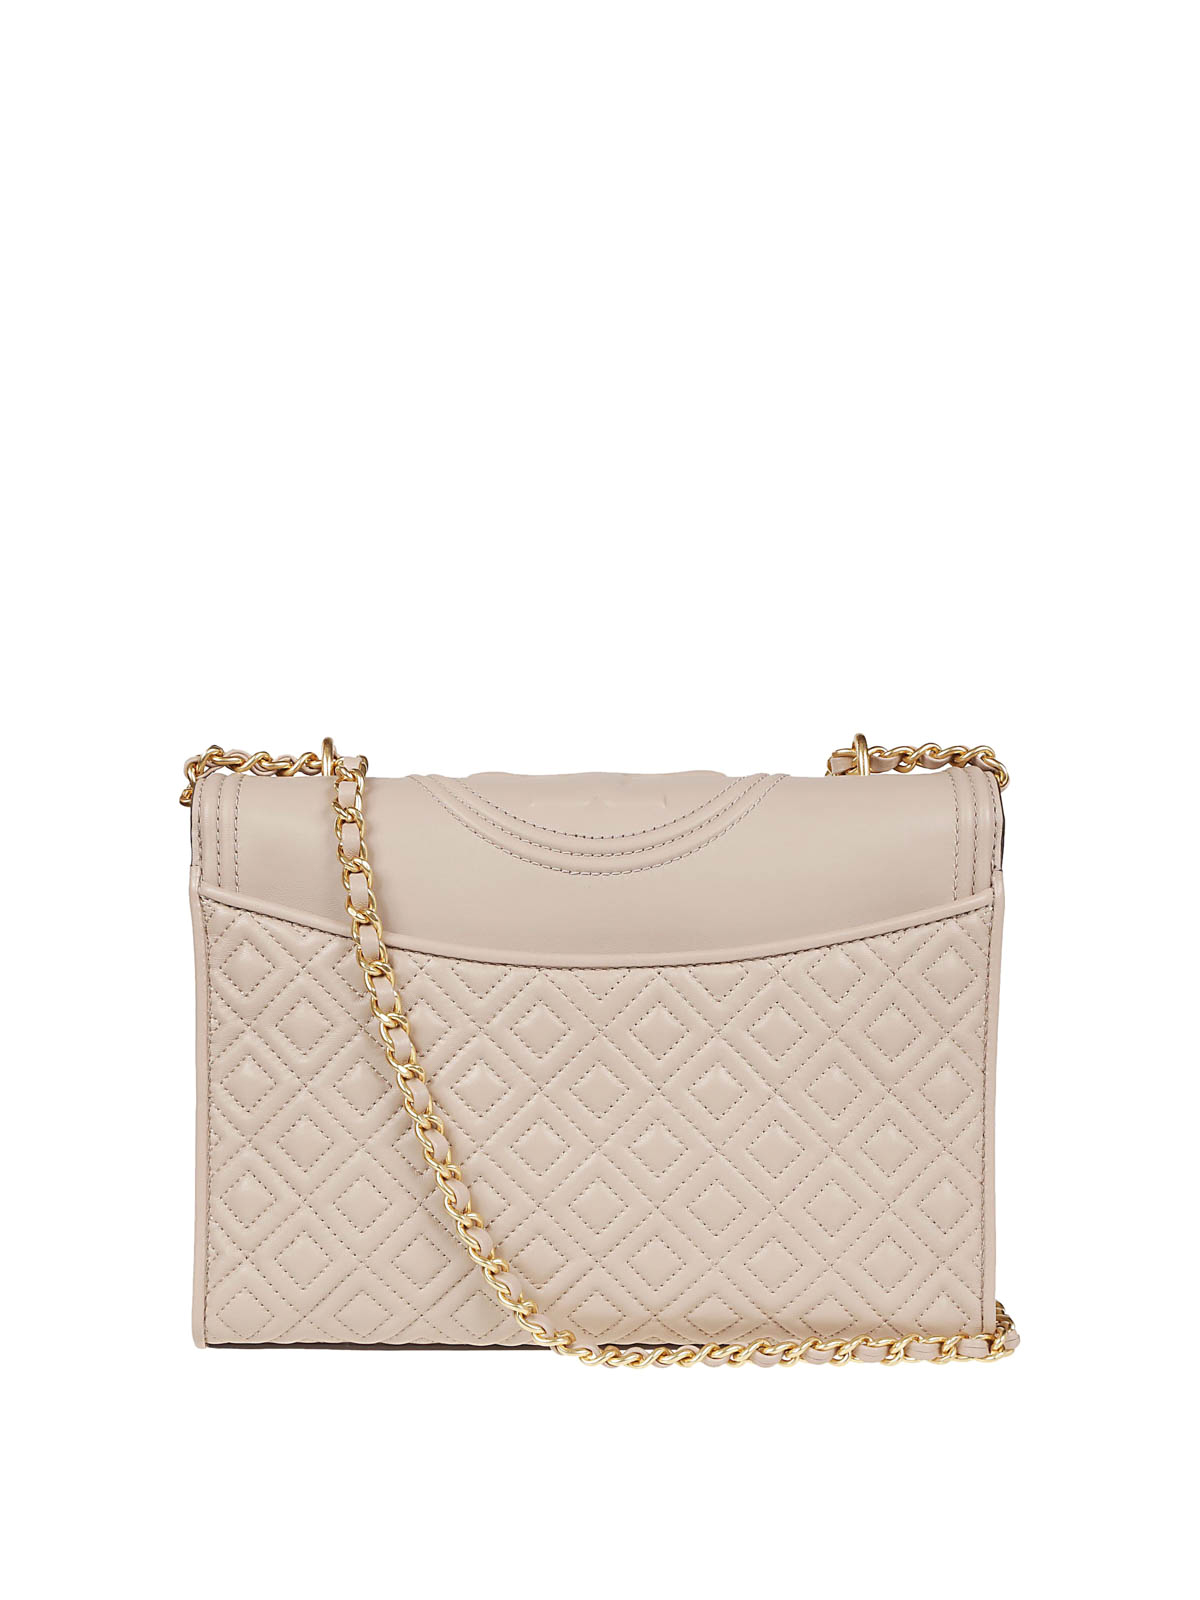 7cc0a1d2b97 iKRIX TORY BURCH  shoulder bags - Fleming light taupe quilted leather bag